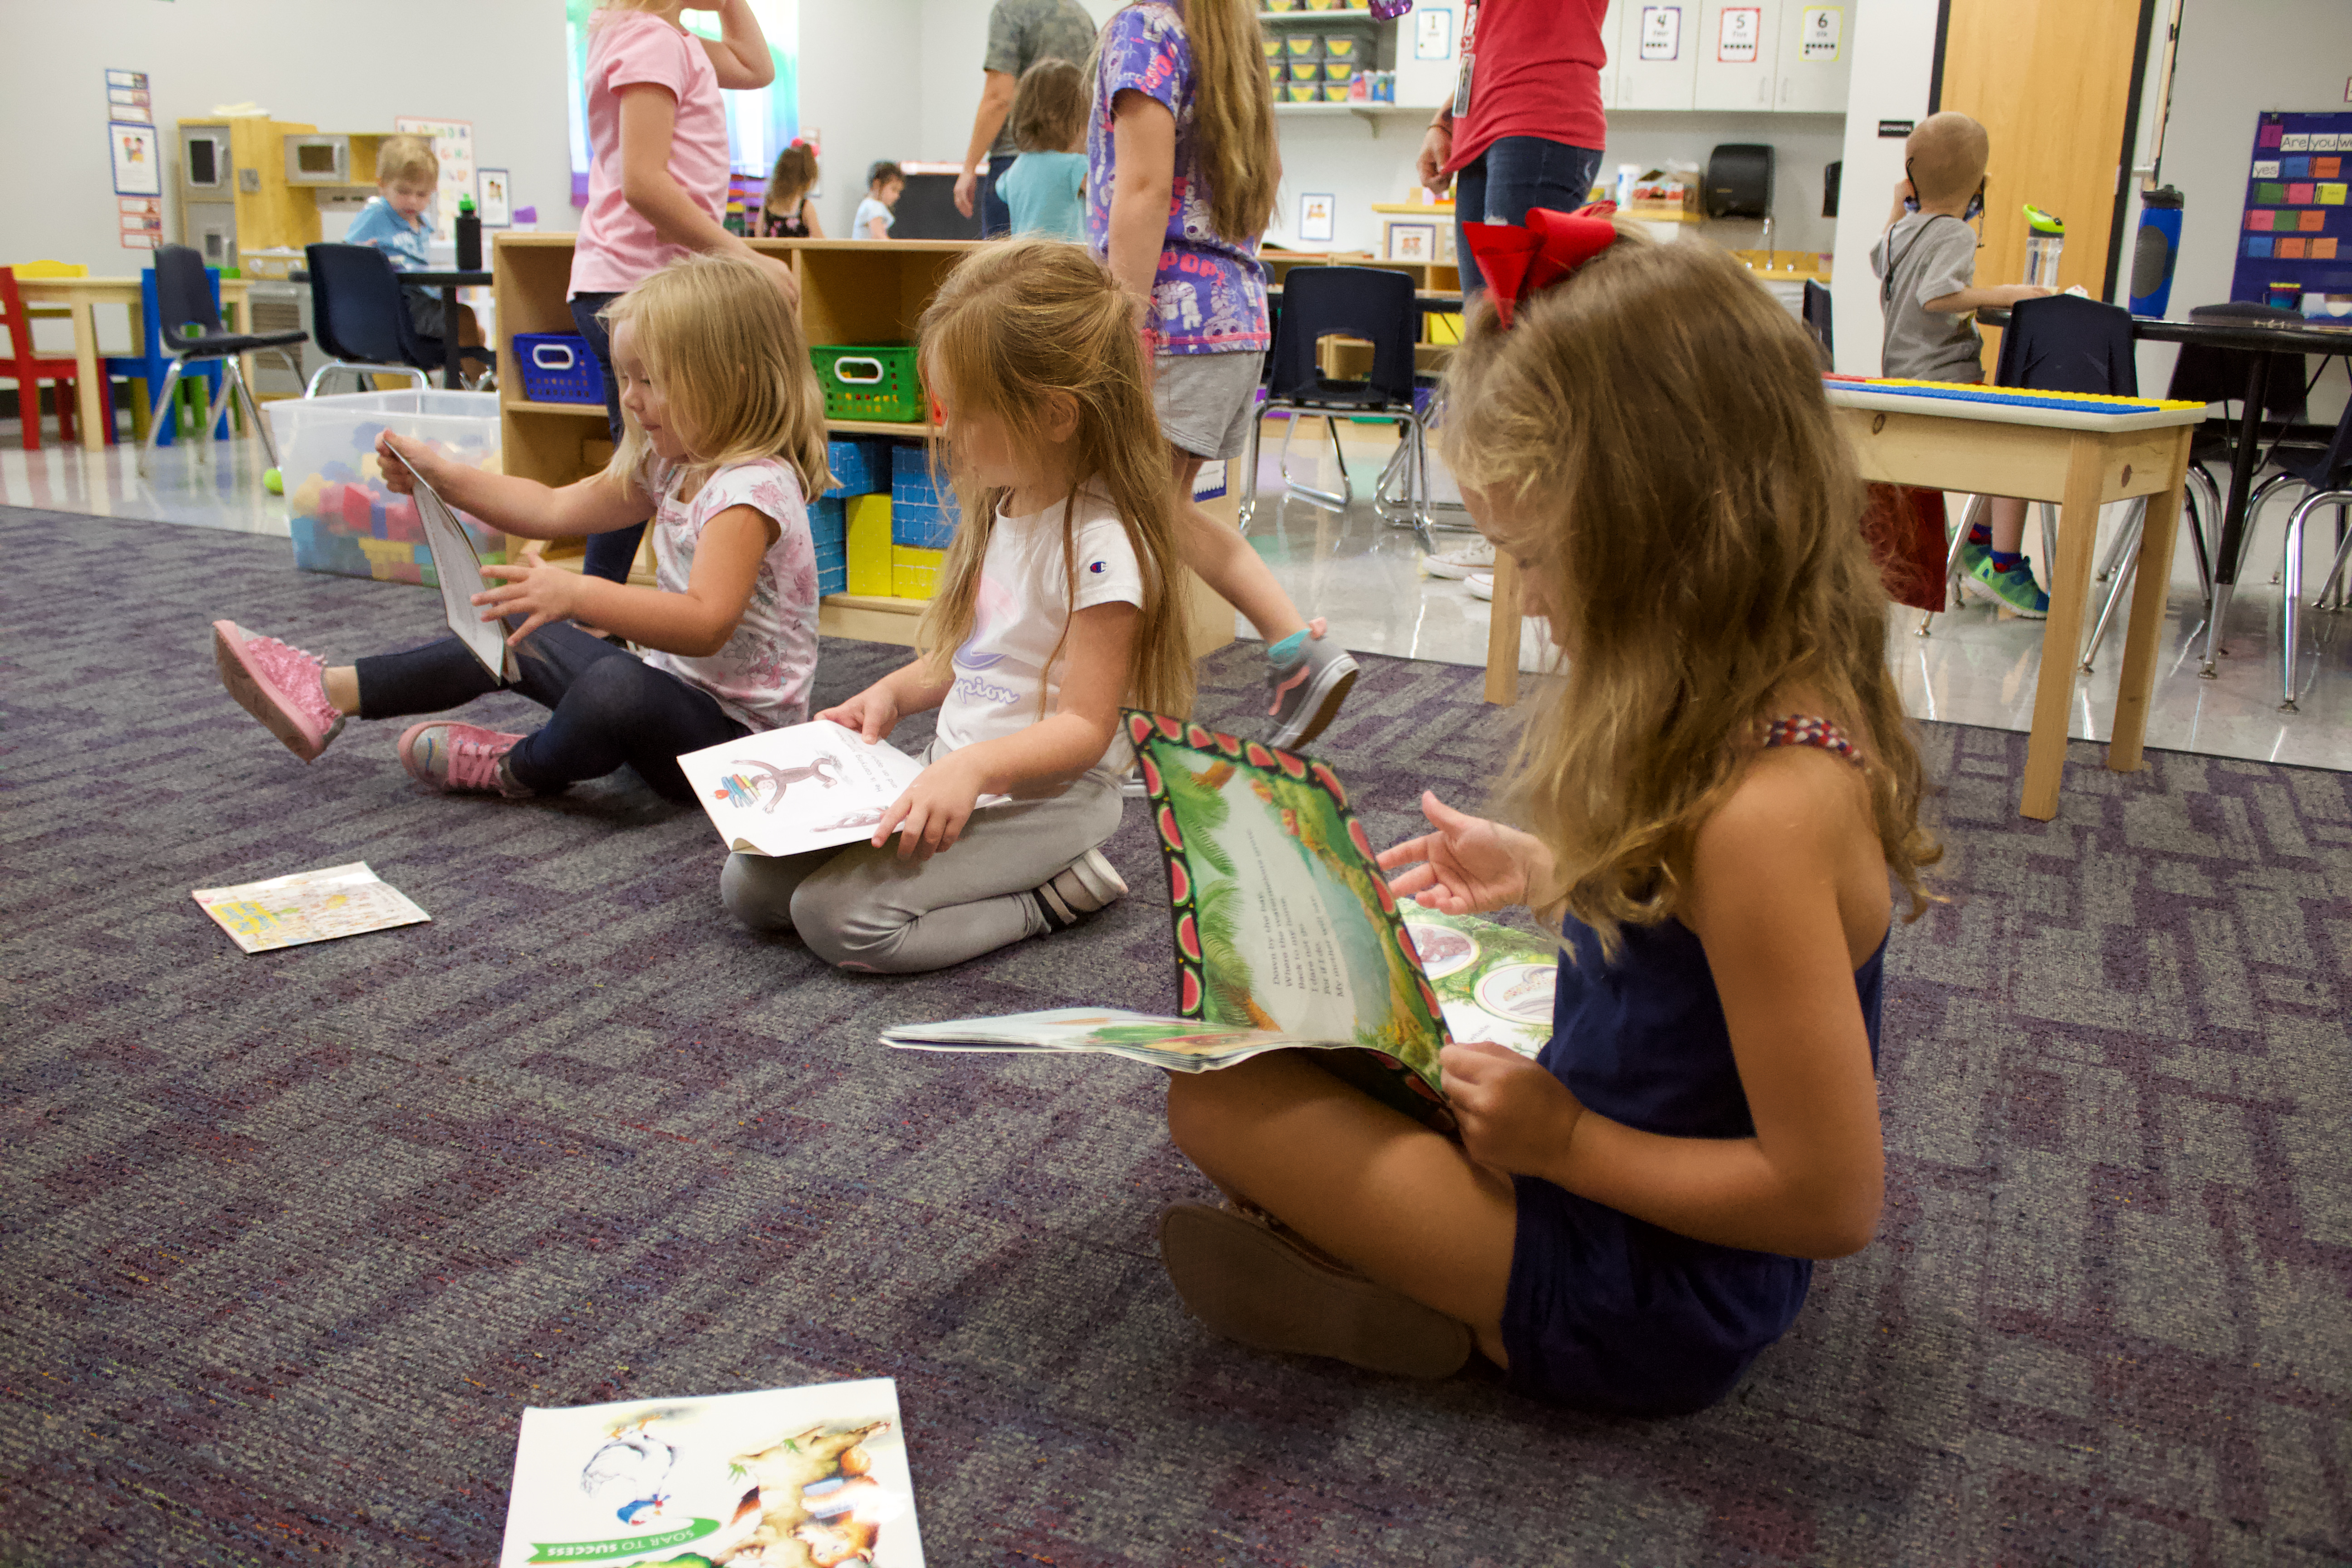 Preschool students sitting on the floor looking at picture books